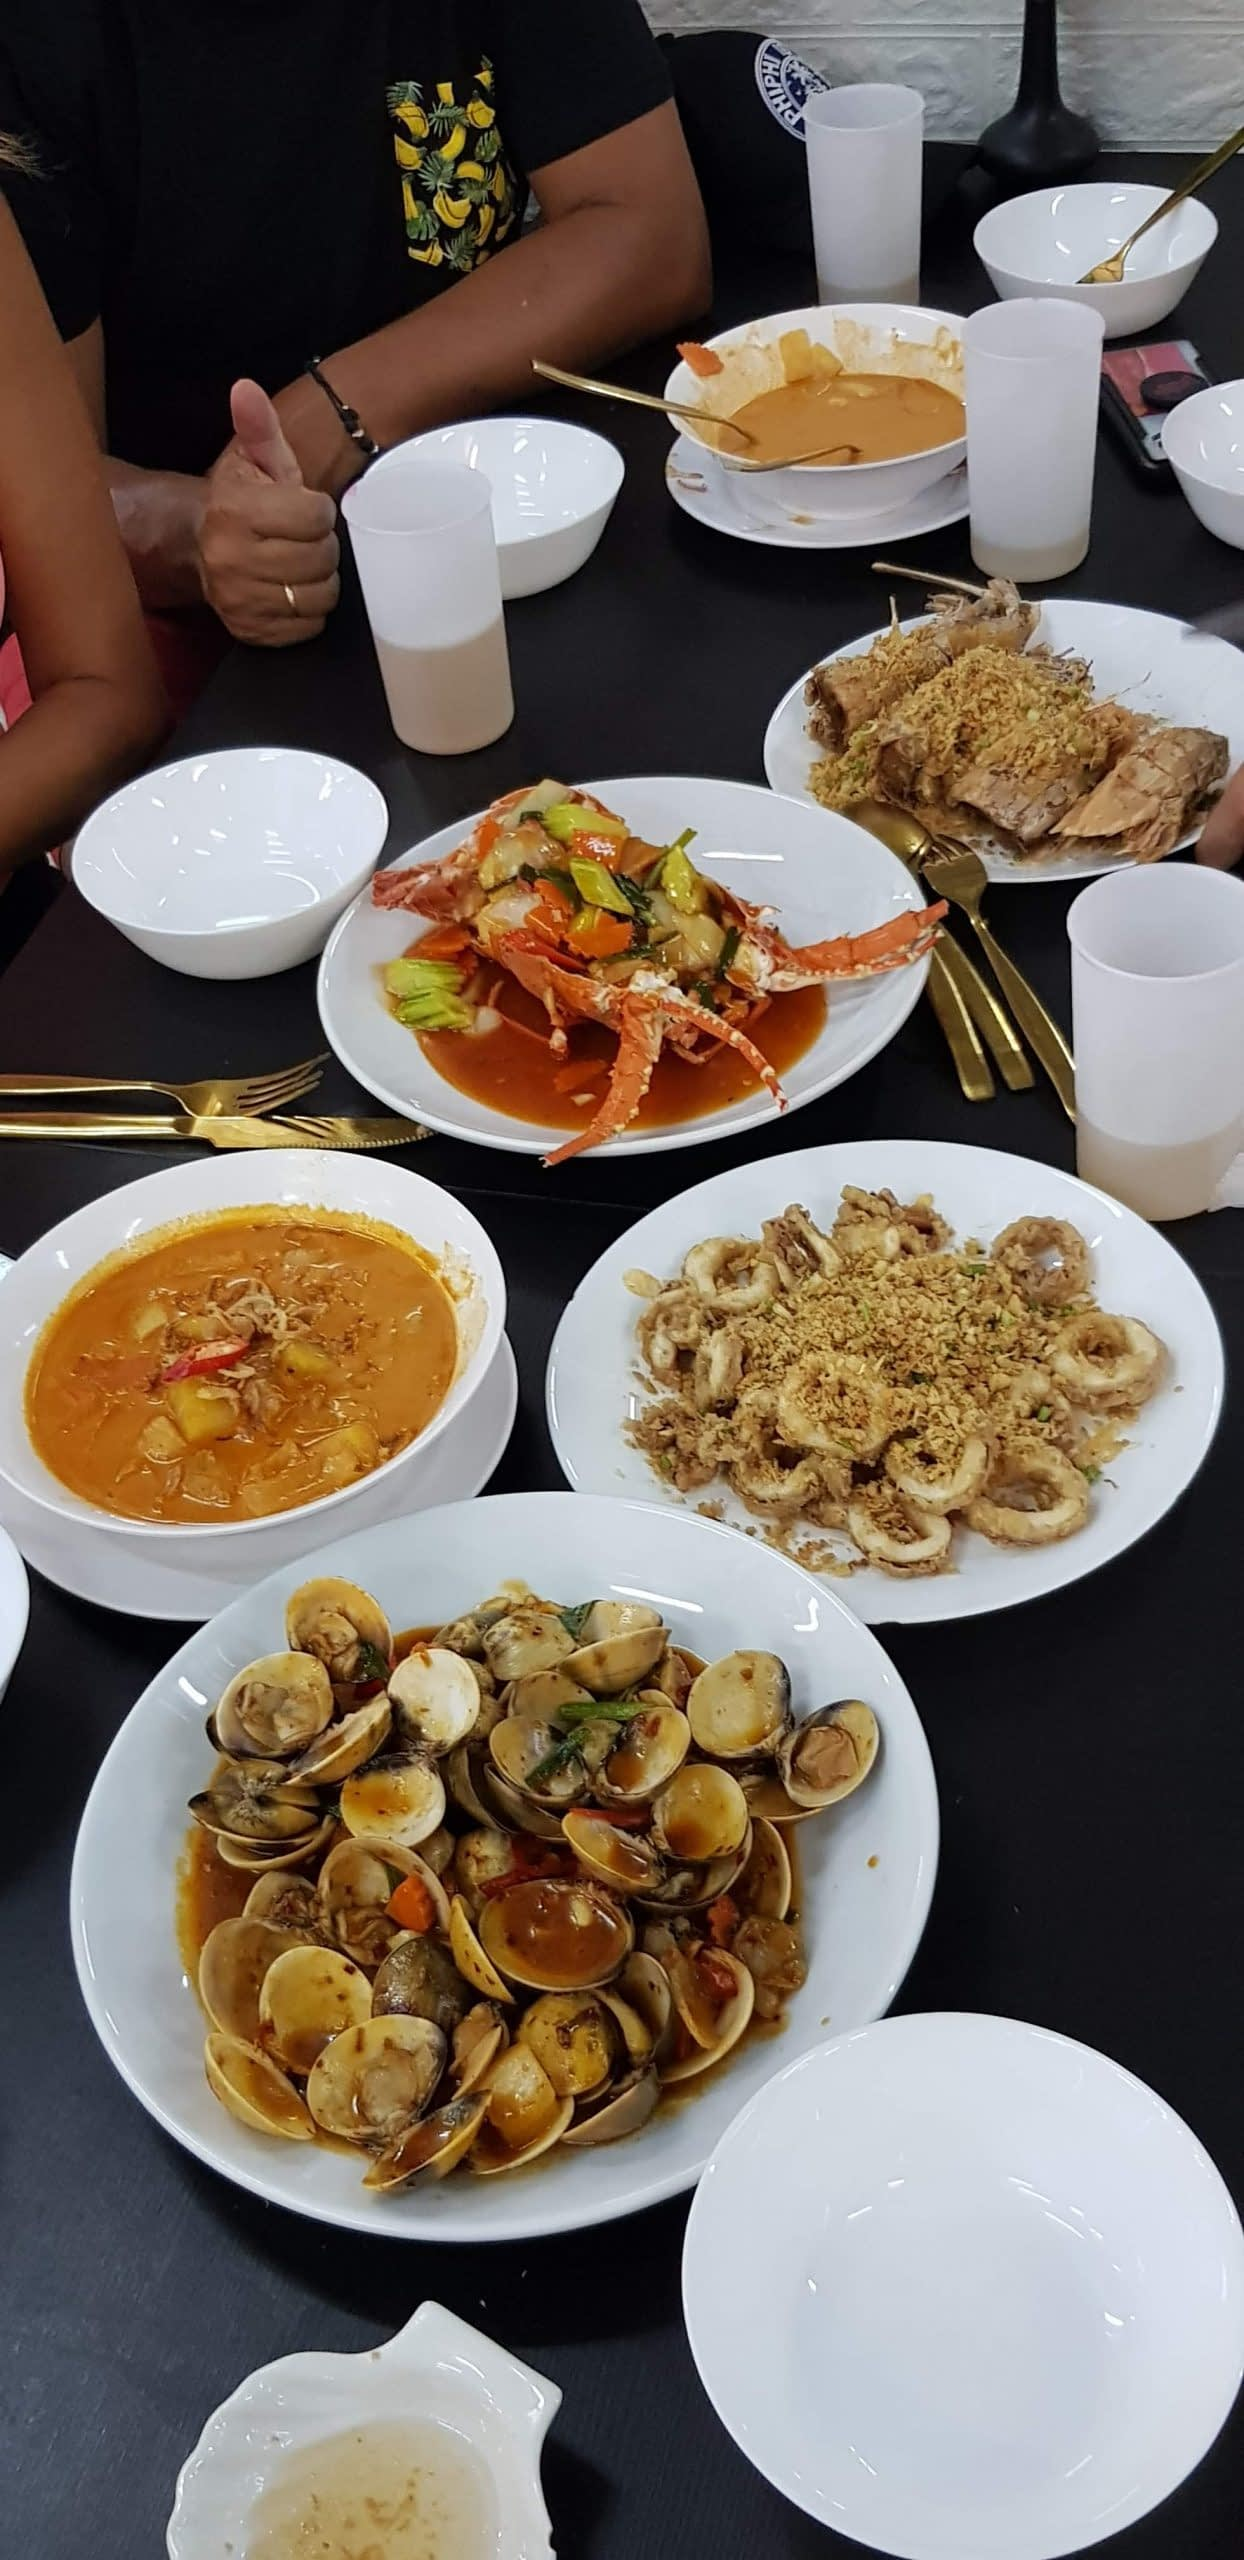 So that you can enjoy all our signature dishes